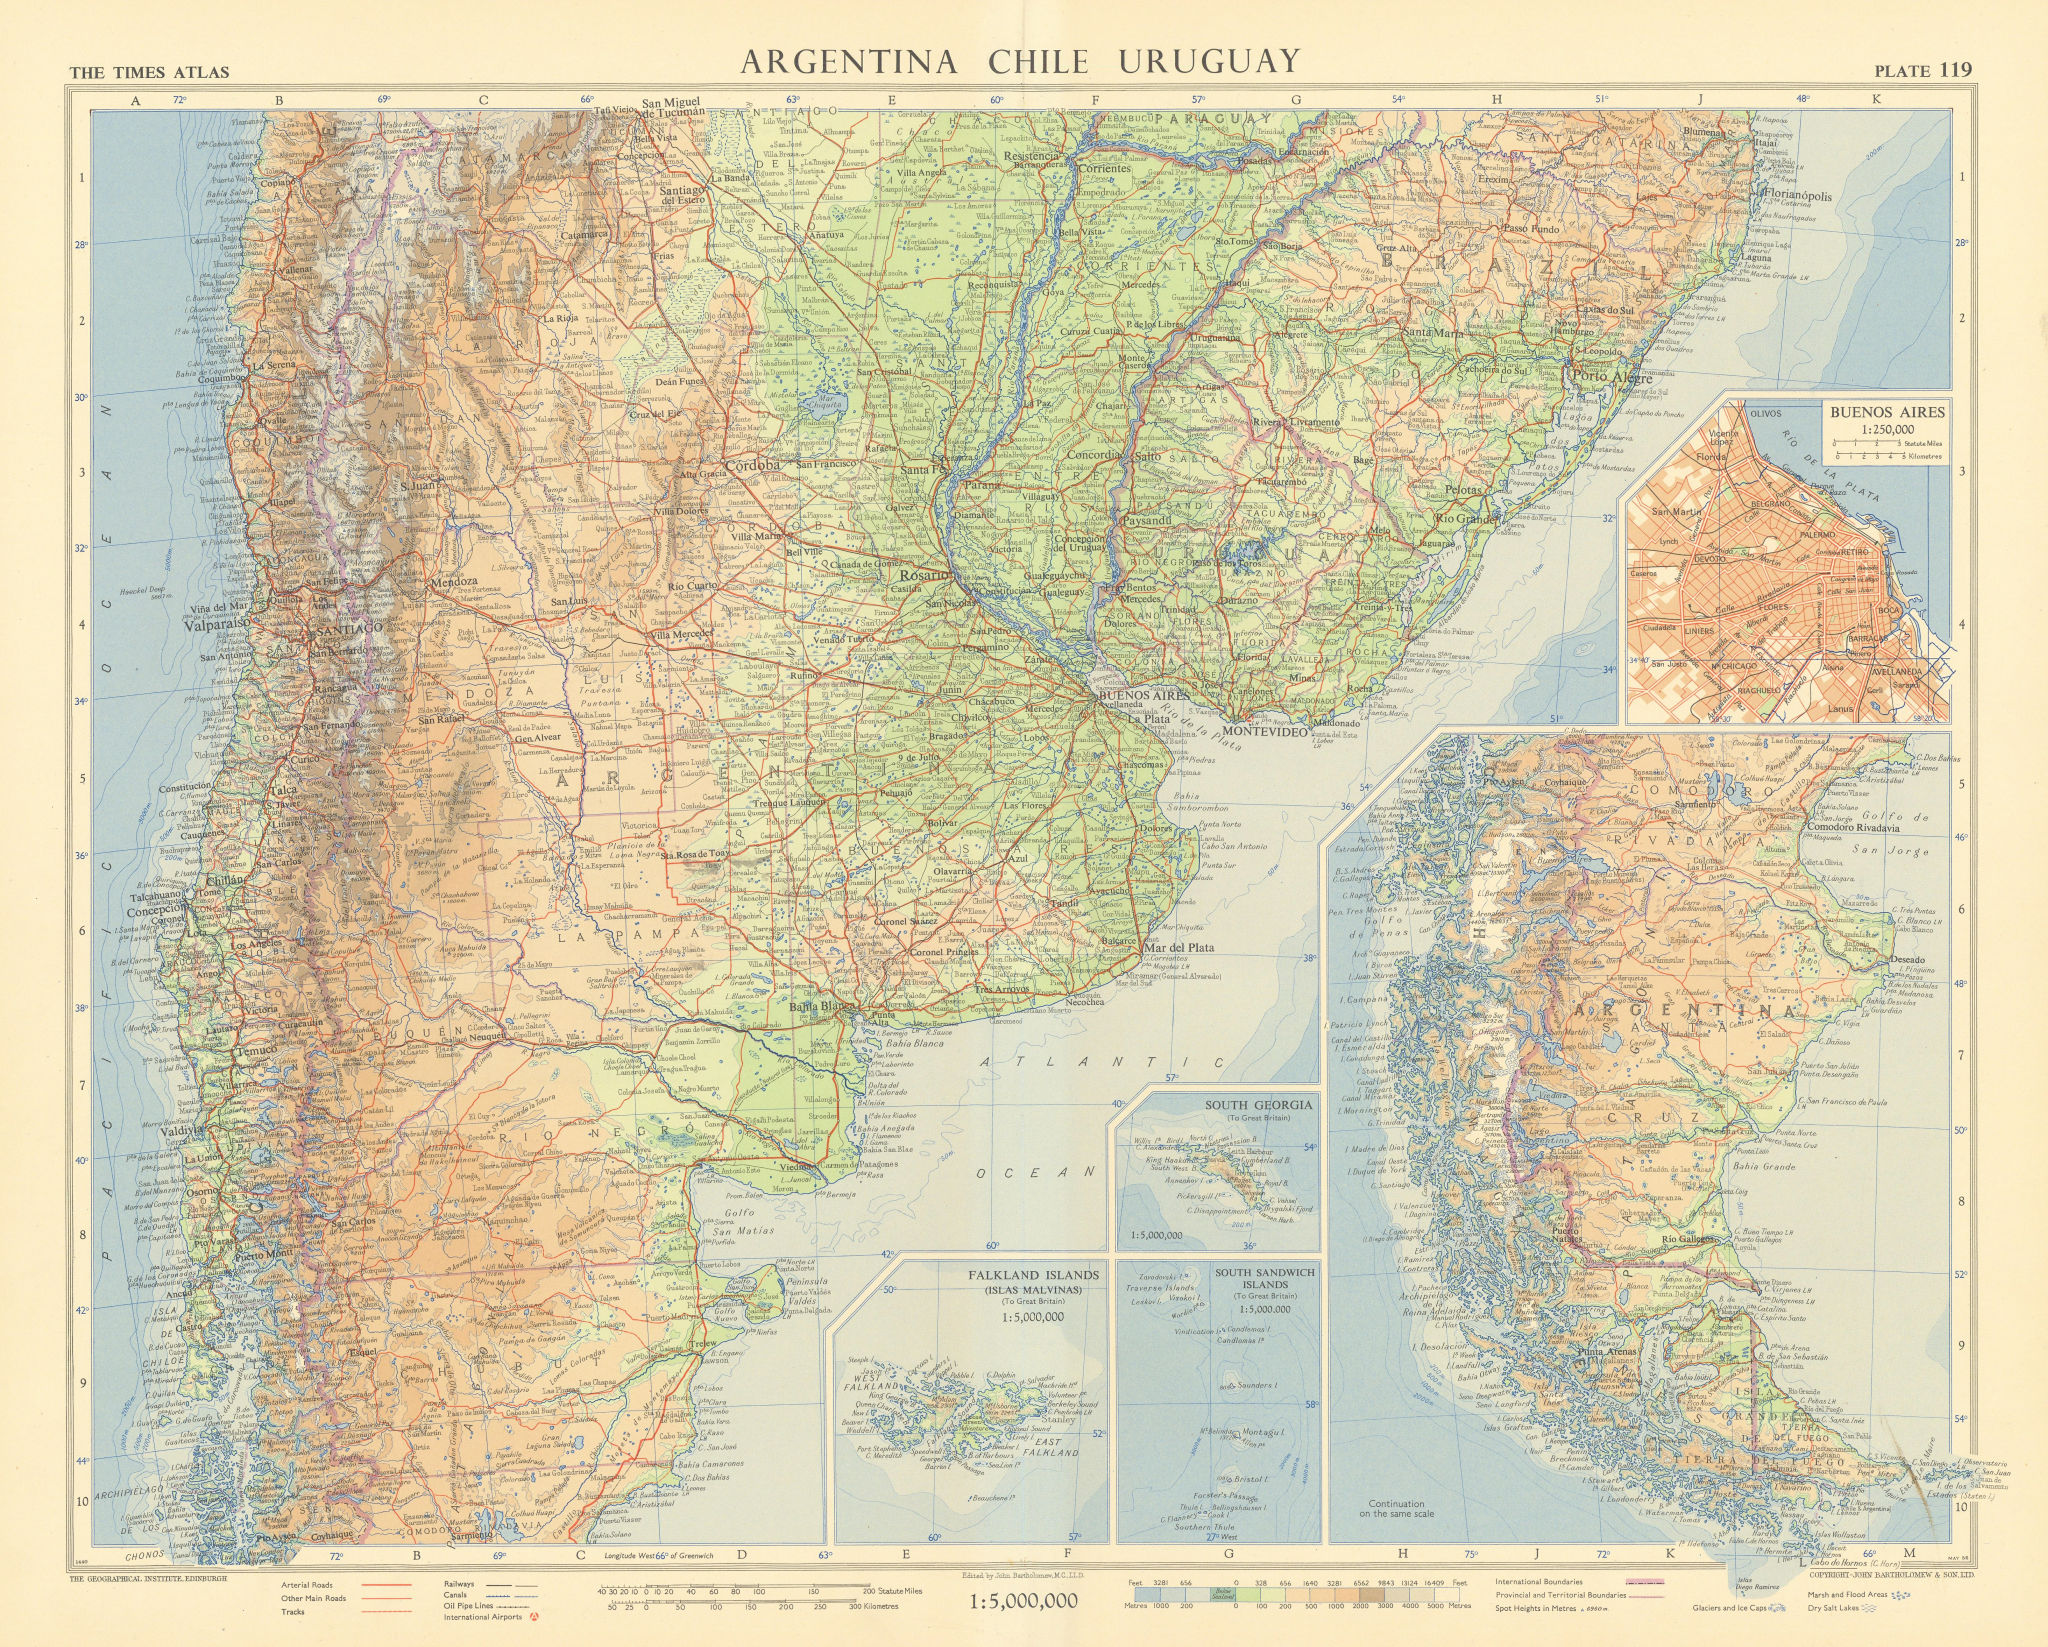 Argentina Chile Uruguay. Buenos Ayres plan. South America. TIMES 1957 old map